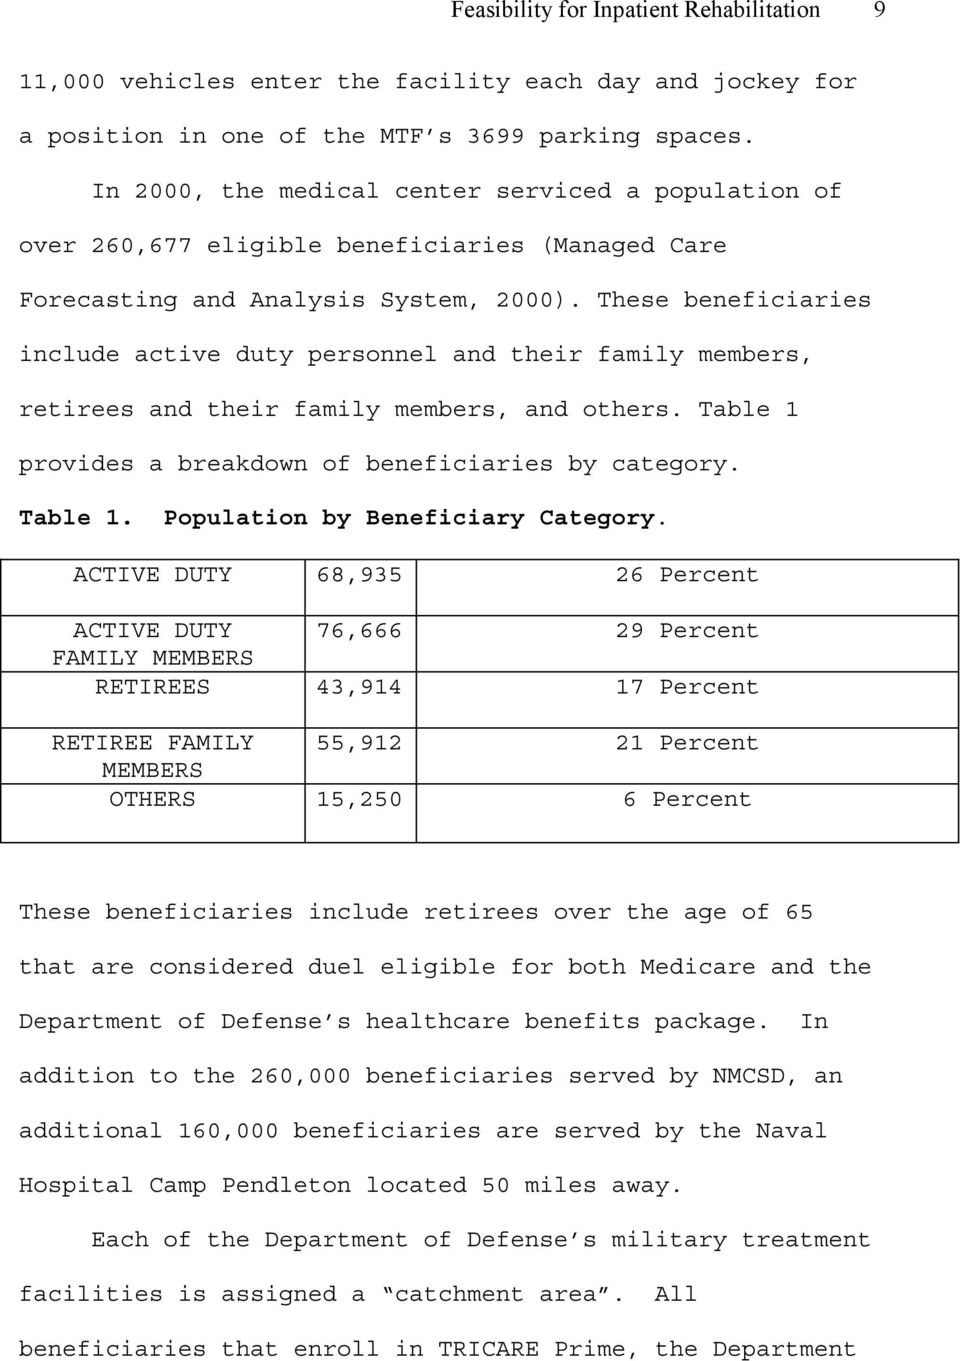 These beneficiaries include active duty personnel and their family members, retirees and their family members, and others. Table 1 provides a breakdown of beneficiaries by category. Table 1. Population by Beneficiary Category.